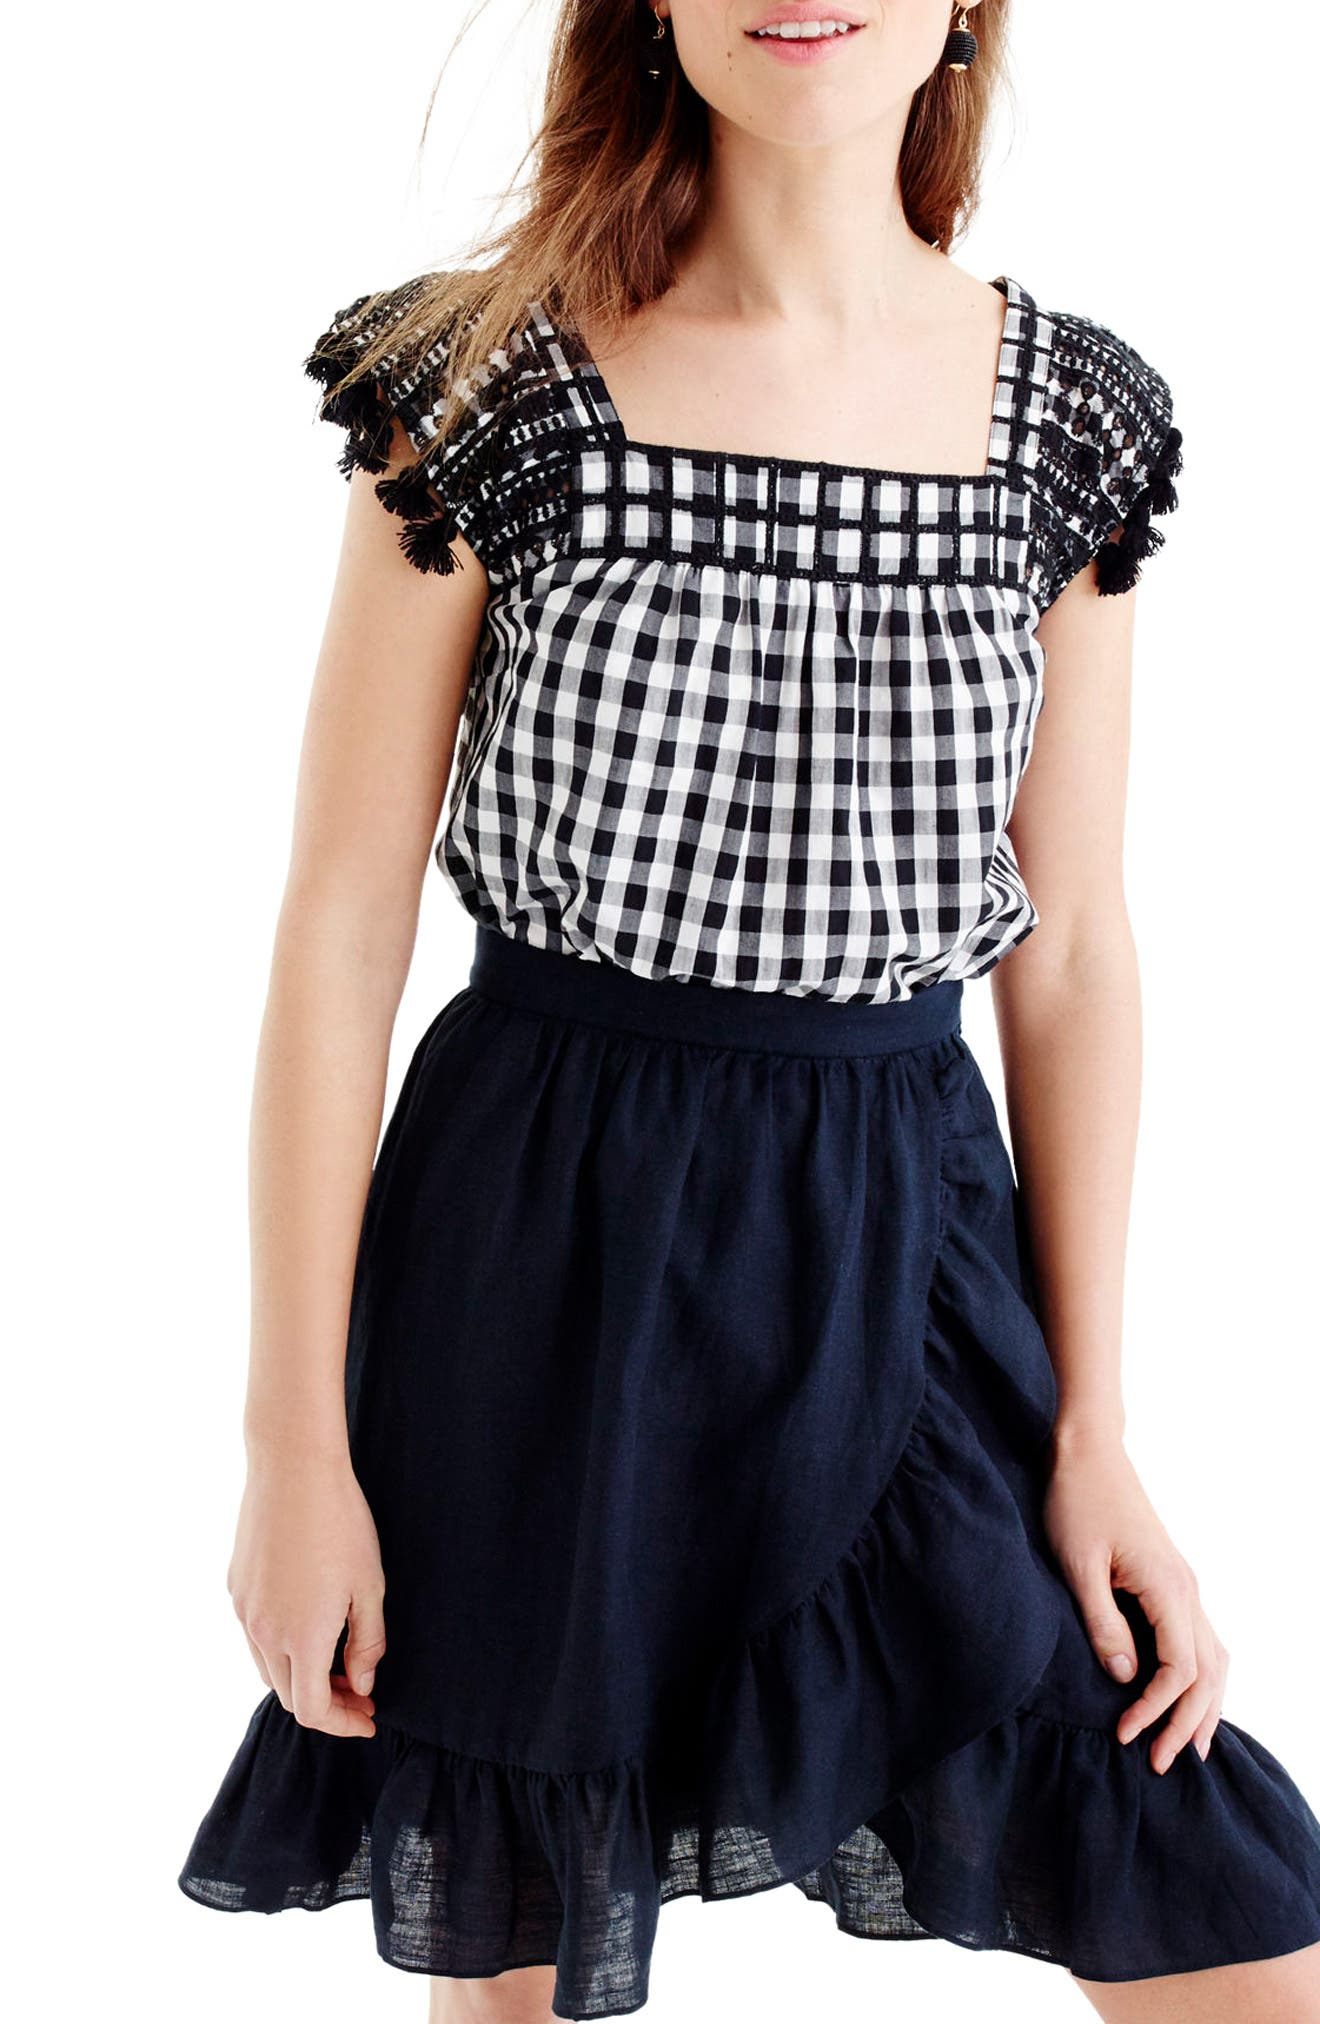 Alternate Image 1 Selected - J.Crew Embroidered Gingham Top